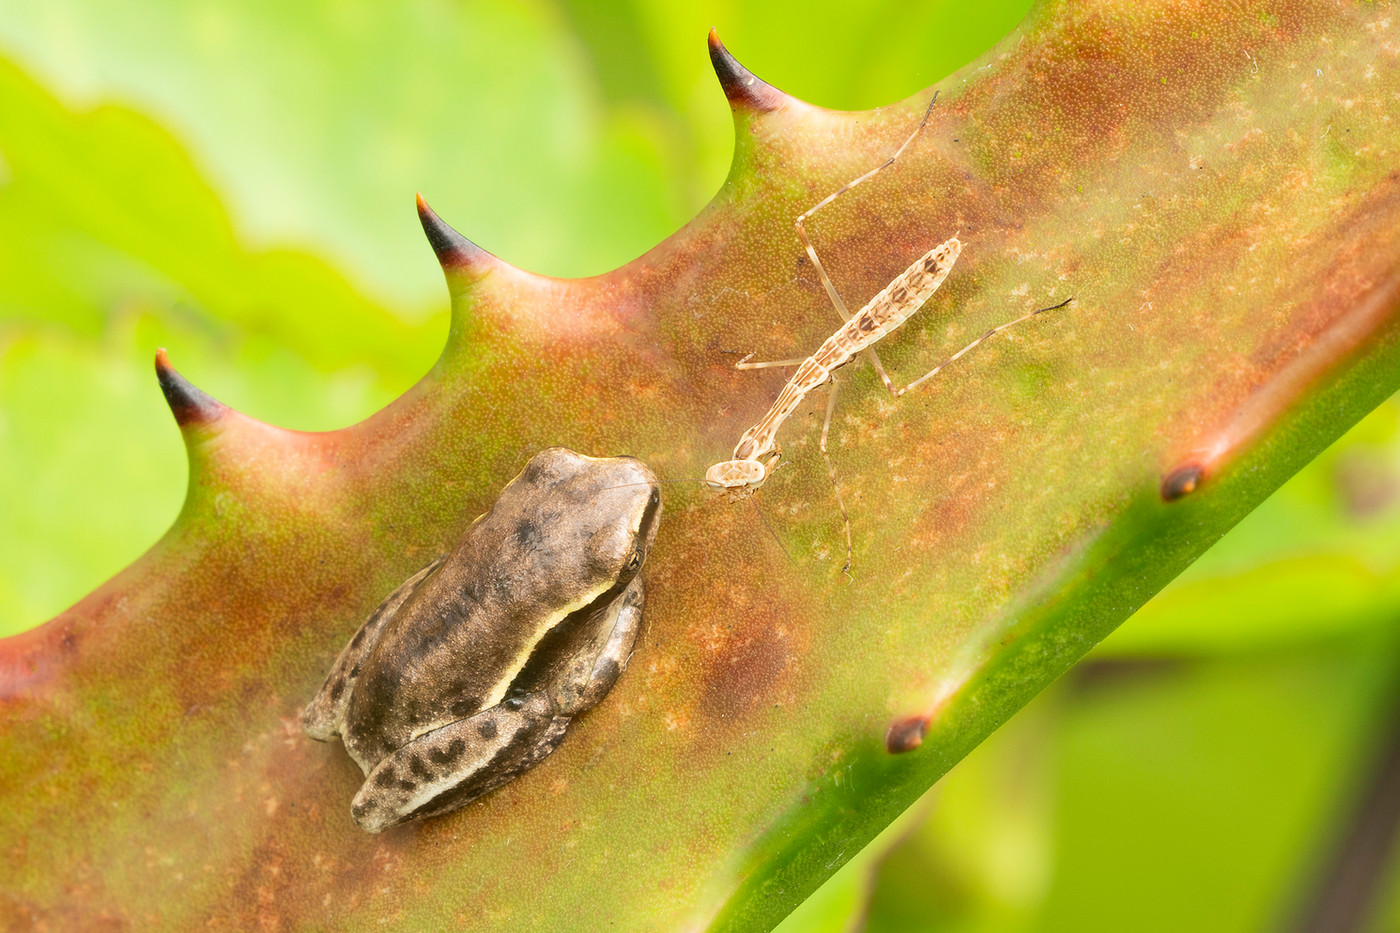 Reed Frog & hatchling praying mantis in Arusha, Tanzania